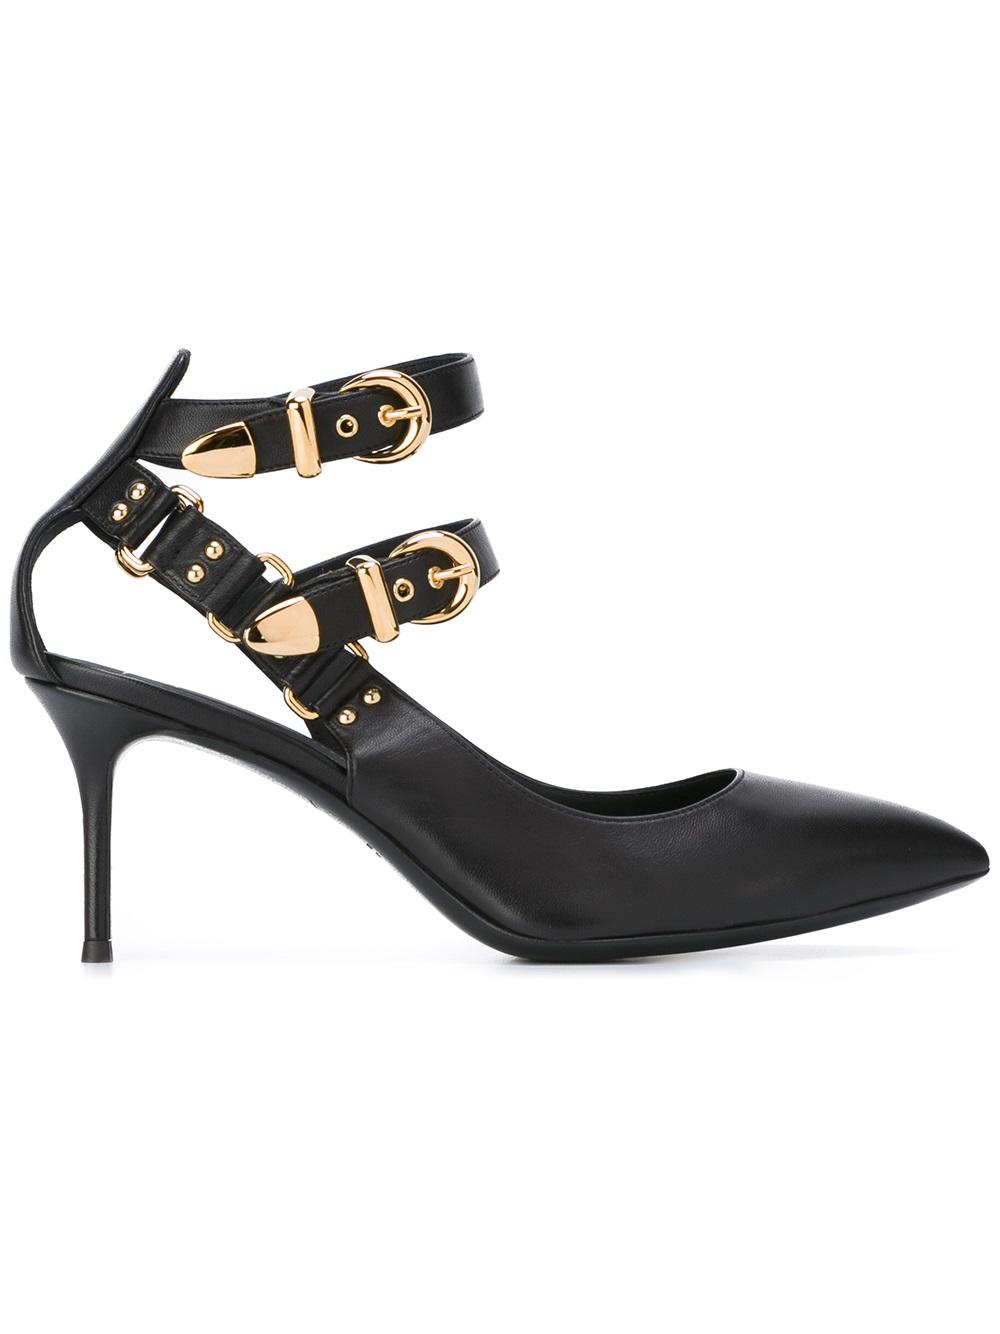 GIUSEPPE ZANOTTI DESIGN   'Meredith' pumps. FARFETCH. Was: $995. Now: $498.